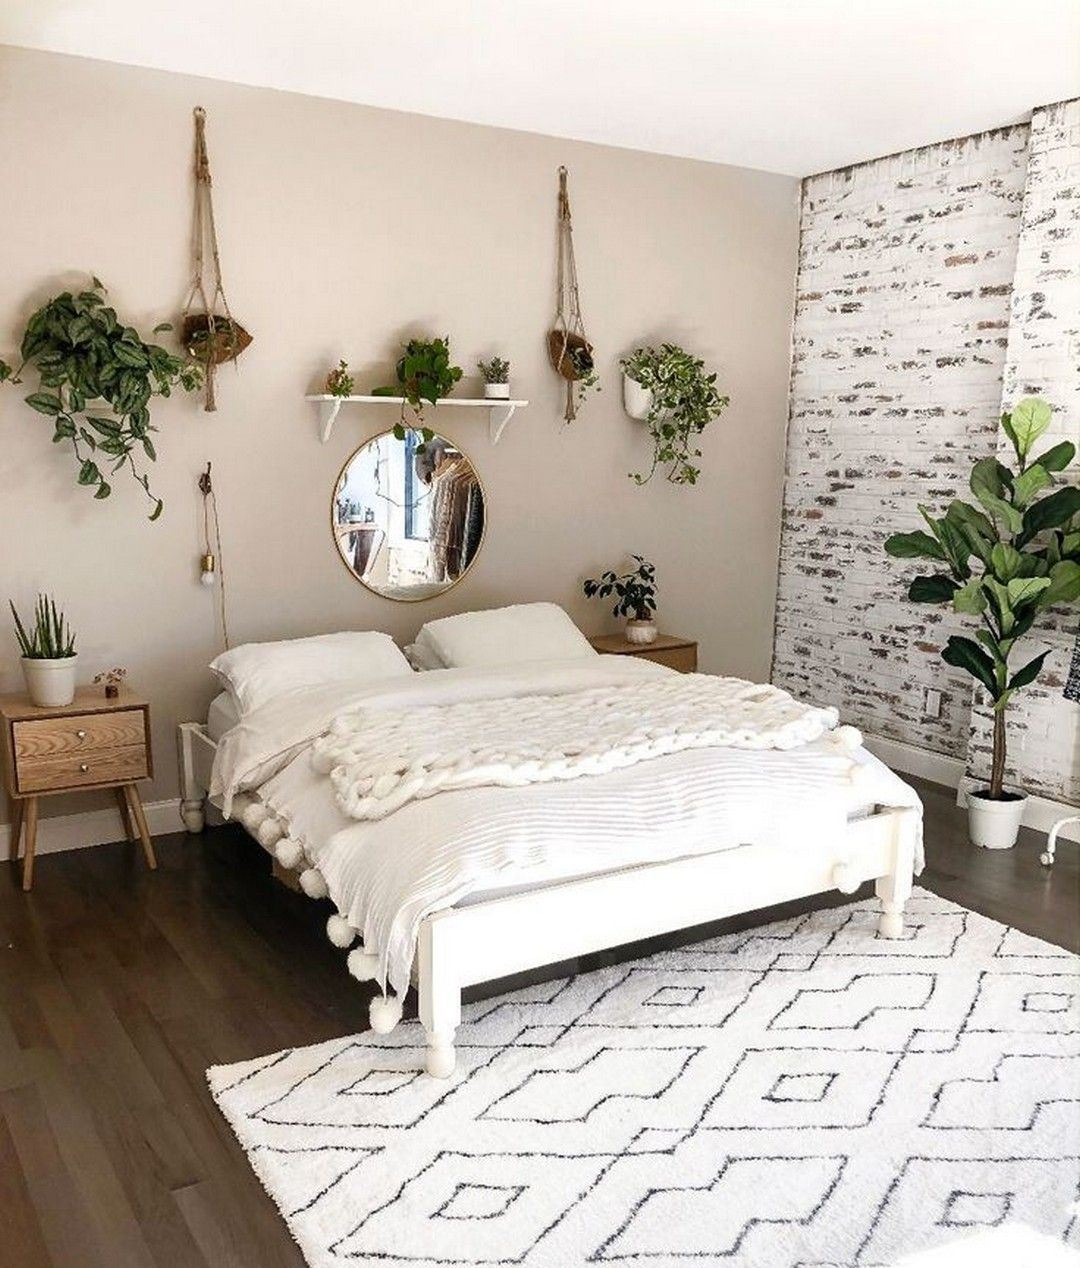 cozy bohemian bedroom idea for your first apartment